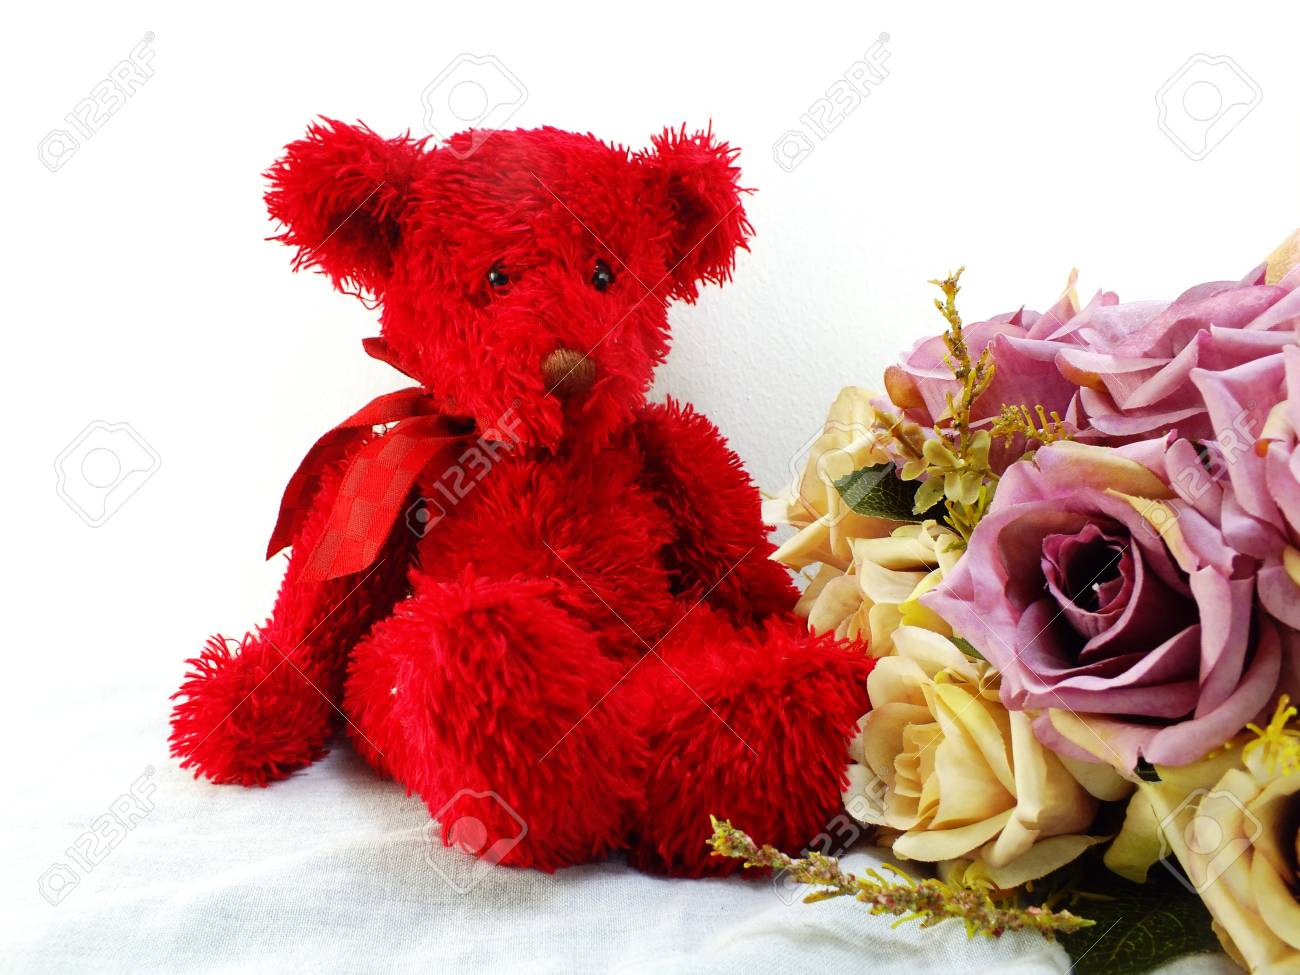 Red Teddy Bear And Roses Artificial Flower Bouquet Stock Photo ...